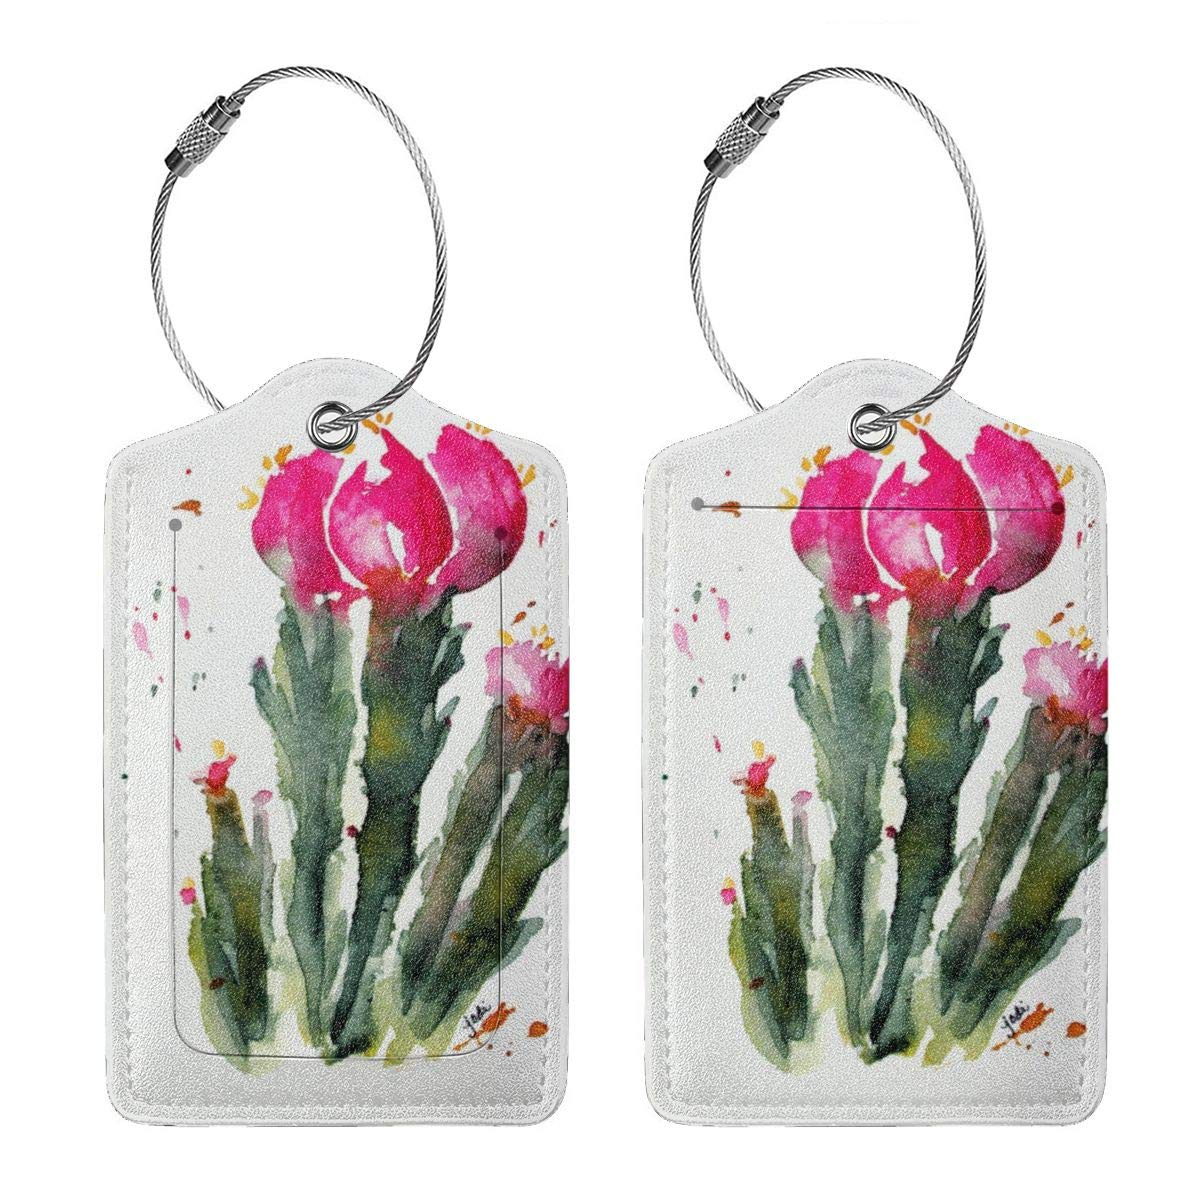 Desert Cactus Flower Luggage Tag Label Travel Bag Label With Privacy Cover Luggage Tag Leather Personalized Suitcase Tag Travel Accessories